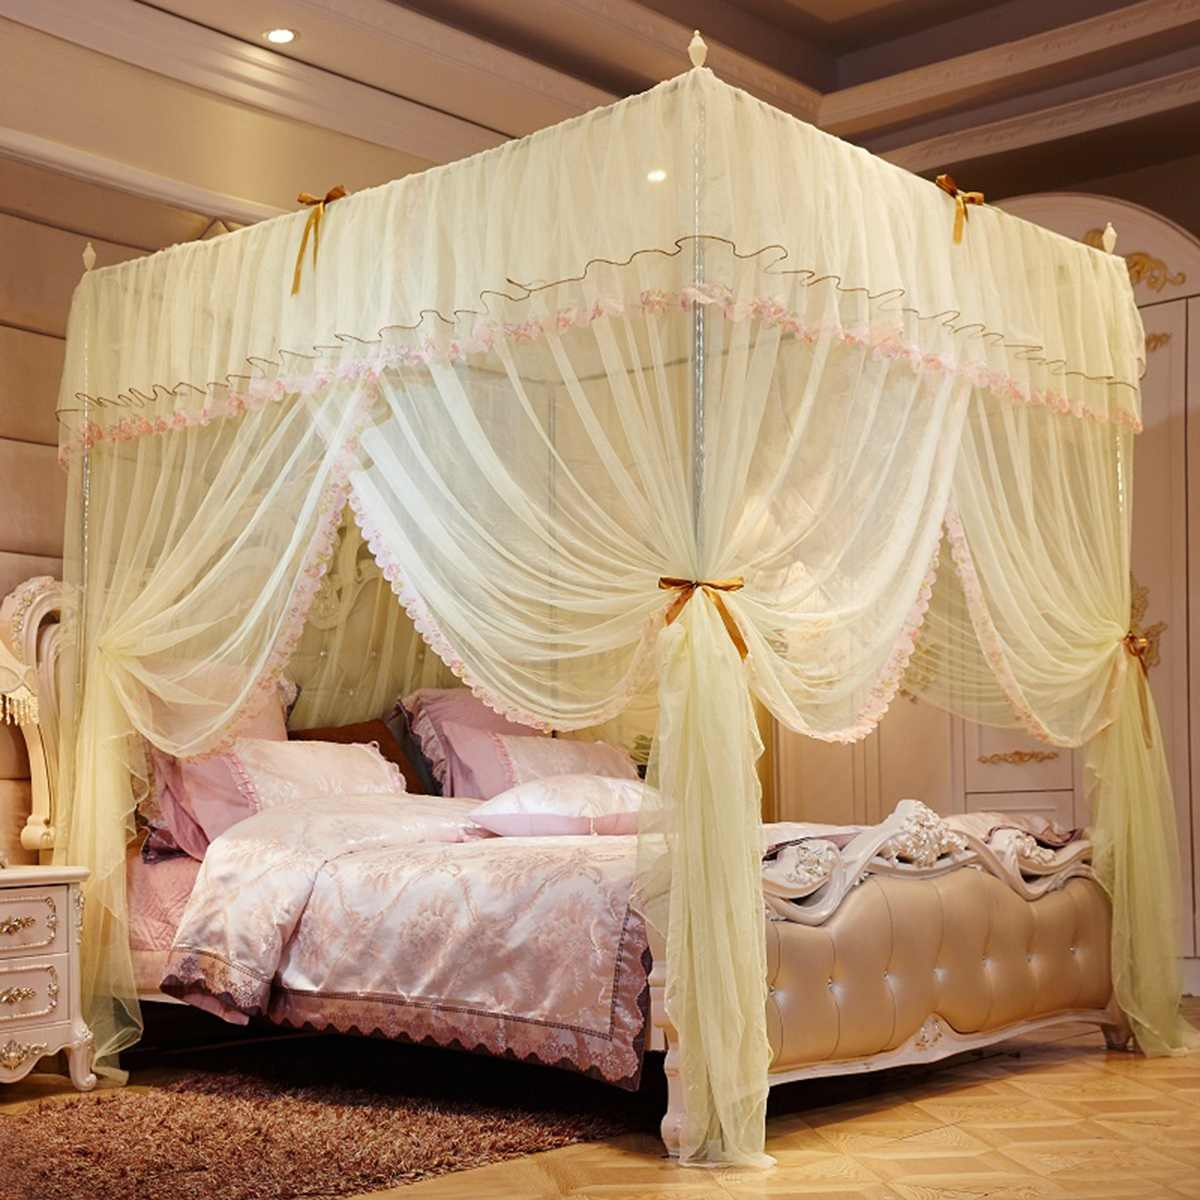 Interiors Ciel De Lit bedding girl princess mosquito net bed canopy tent curtain room decor  klamboe baldachim ciel de lit camas dormitorio